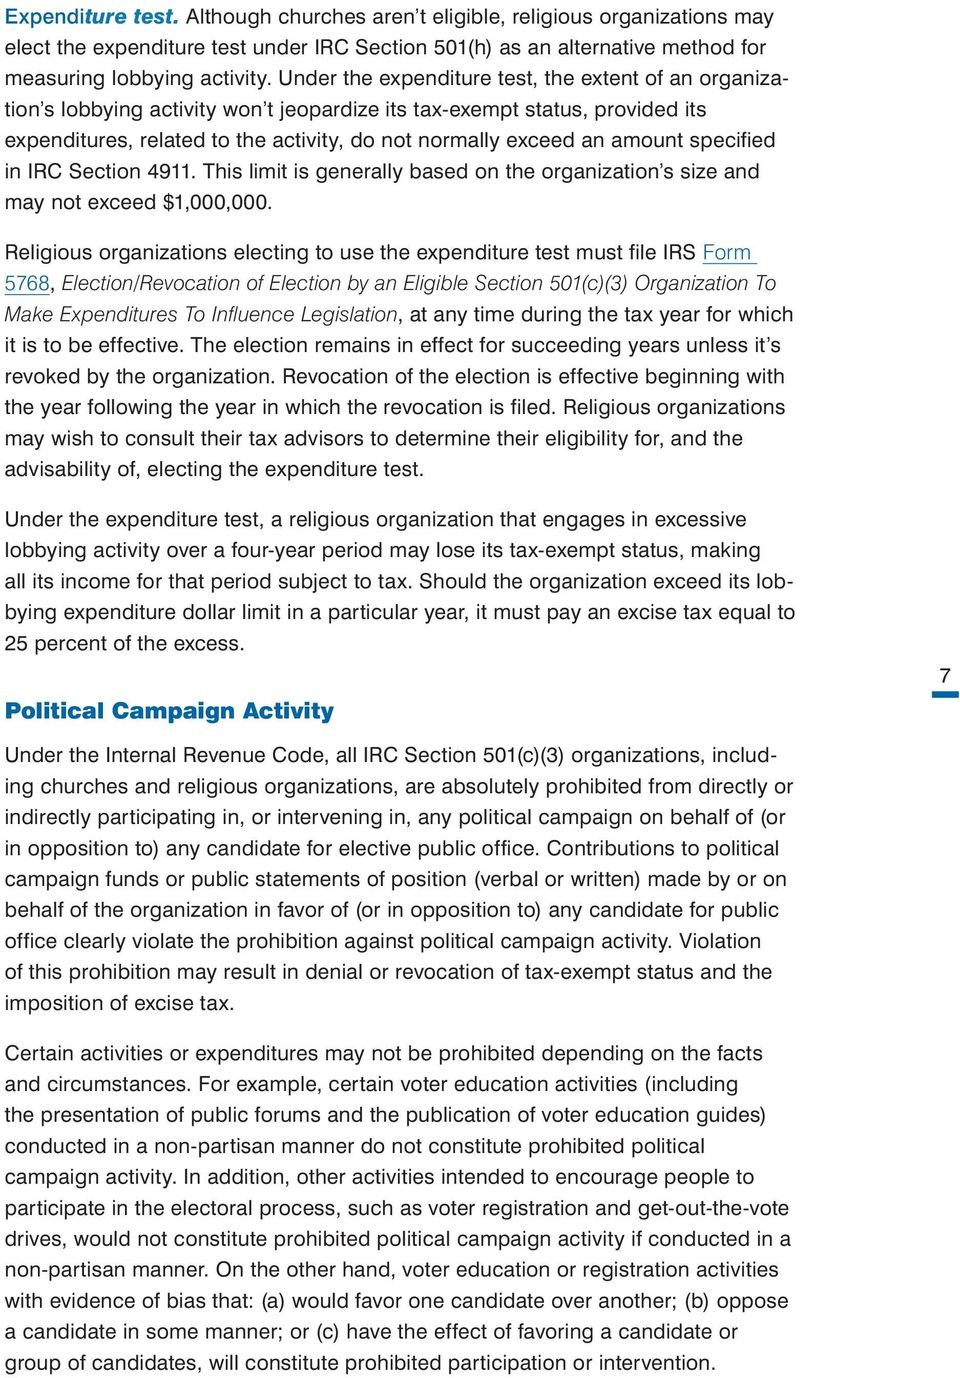 influence of religious organizations Strategic leadership and decision making 15  the influence of religious beliefs may be  many organizations have shown commitment to ferreting out unethical.